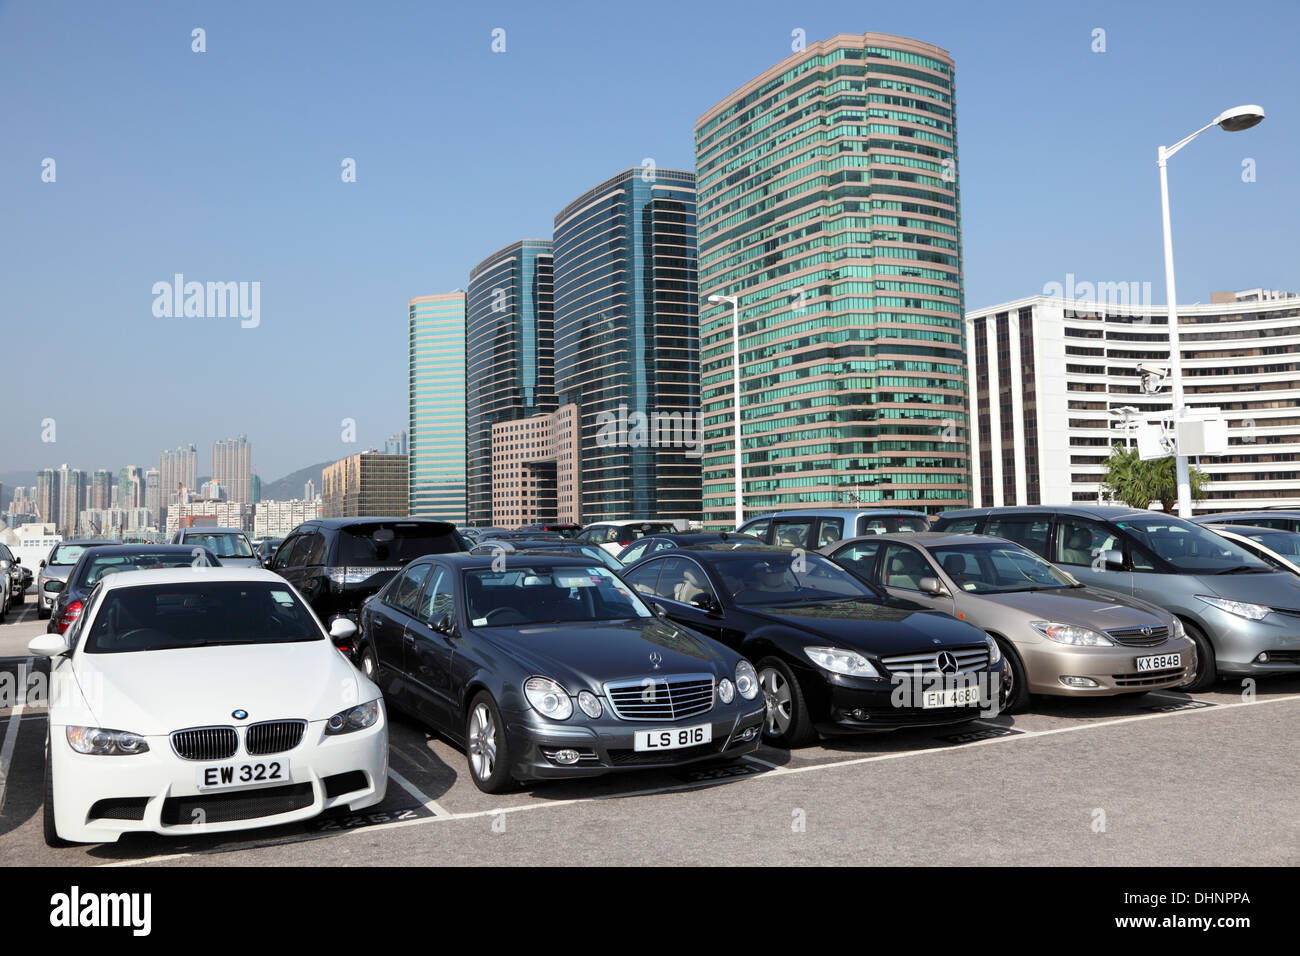 Luxury Cars In Parking Lot In Hong Kong Stock Photo 62559122 Alamy